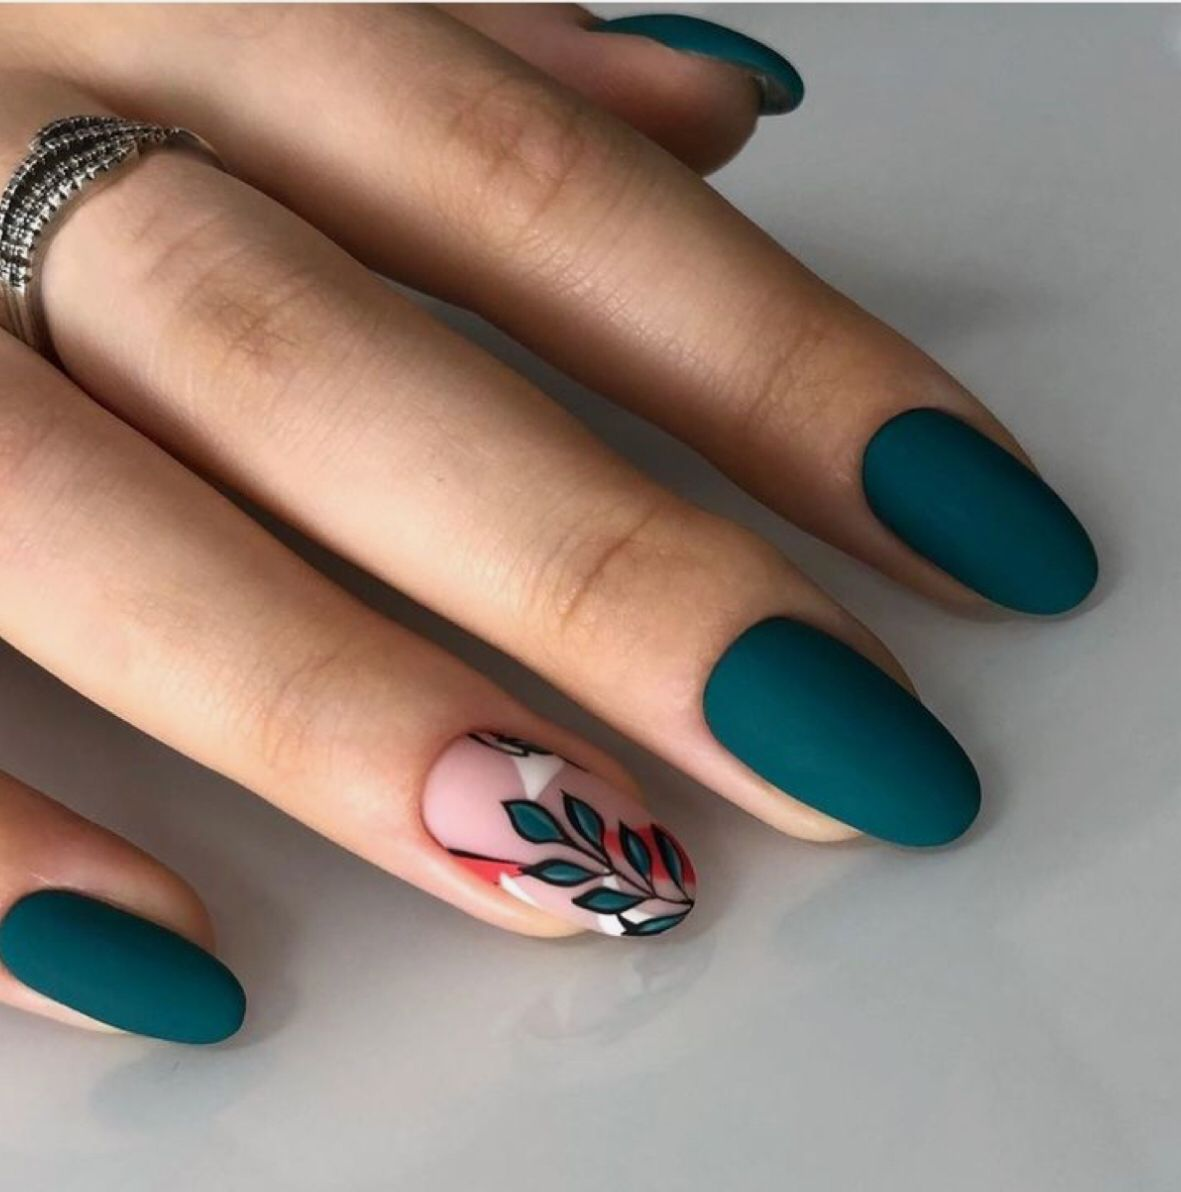 Pin By Marie Kasna On Manikyur In 2020 Emerald Nails Stylish Nails Cute Acrylic Nails